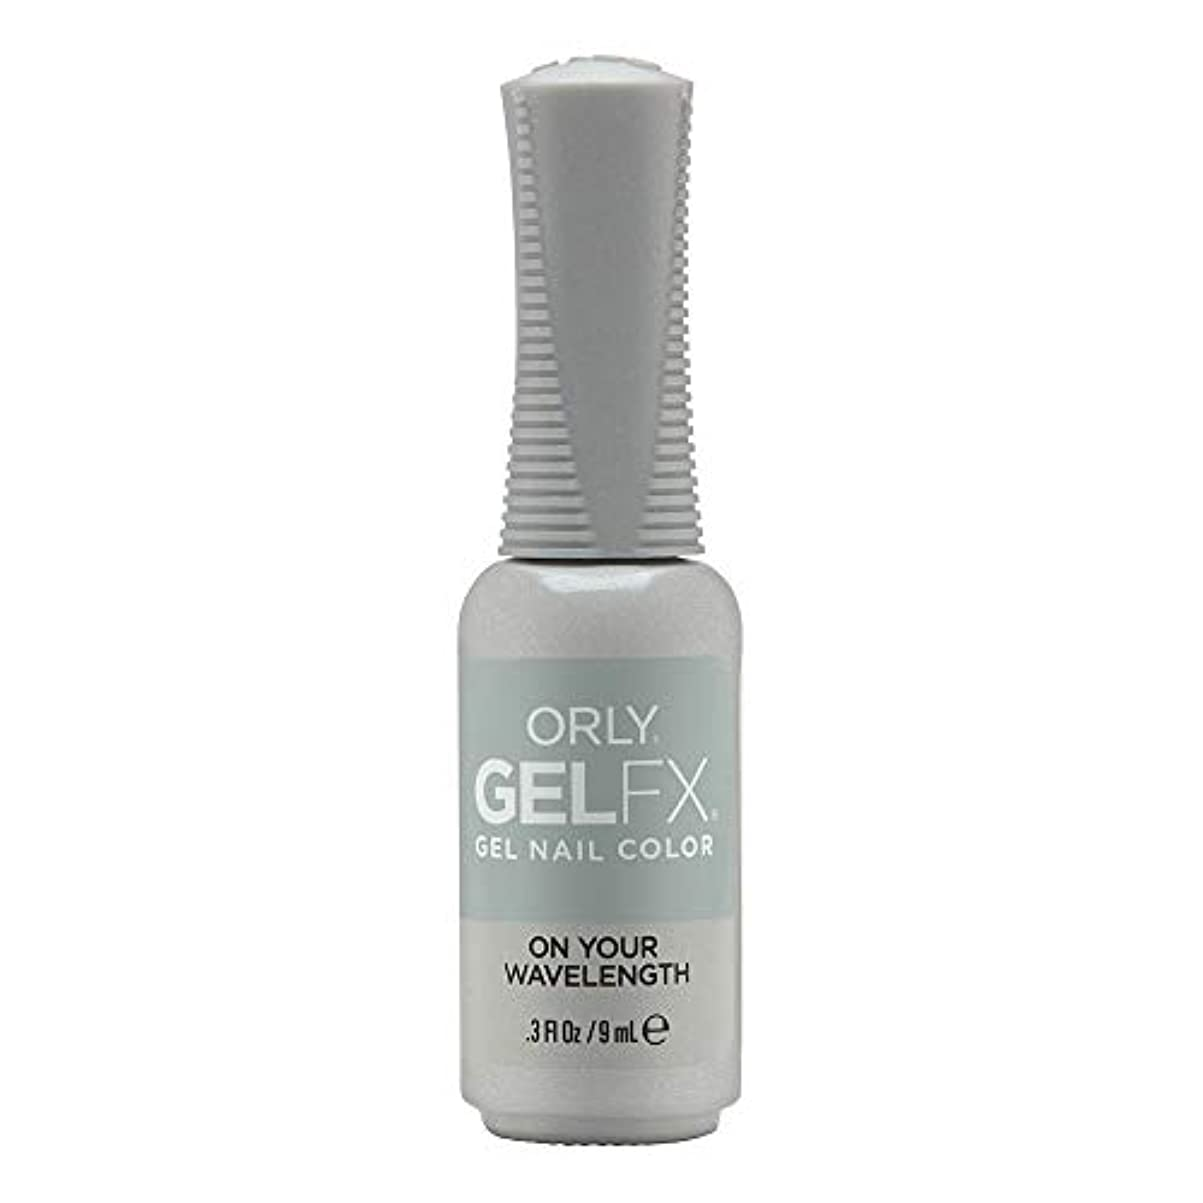 クロニクル冷蔵庫フレキシブルORLY Gel FX - Euphoria 2019 Collection - On Your Wavelength - 0.3 oz / 9 mL